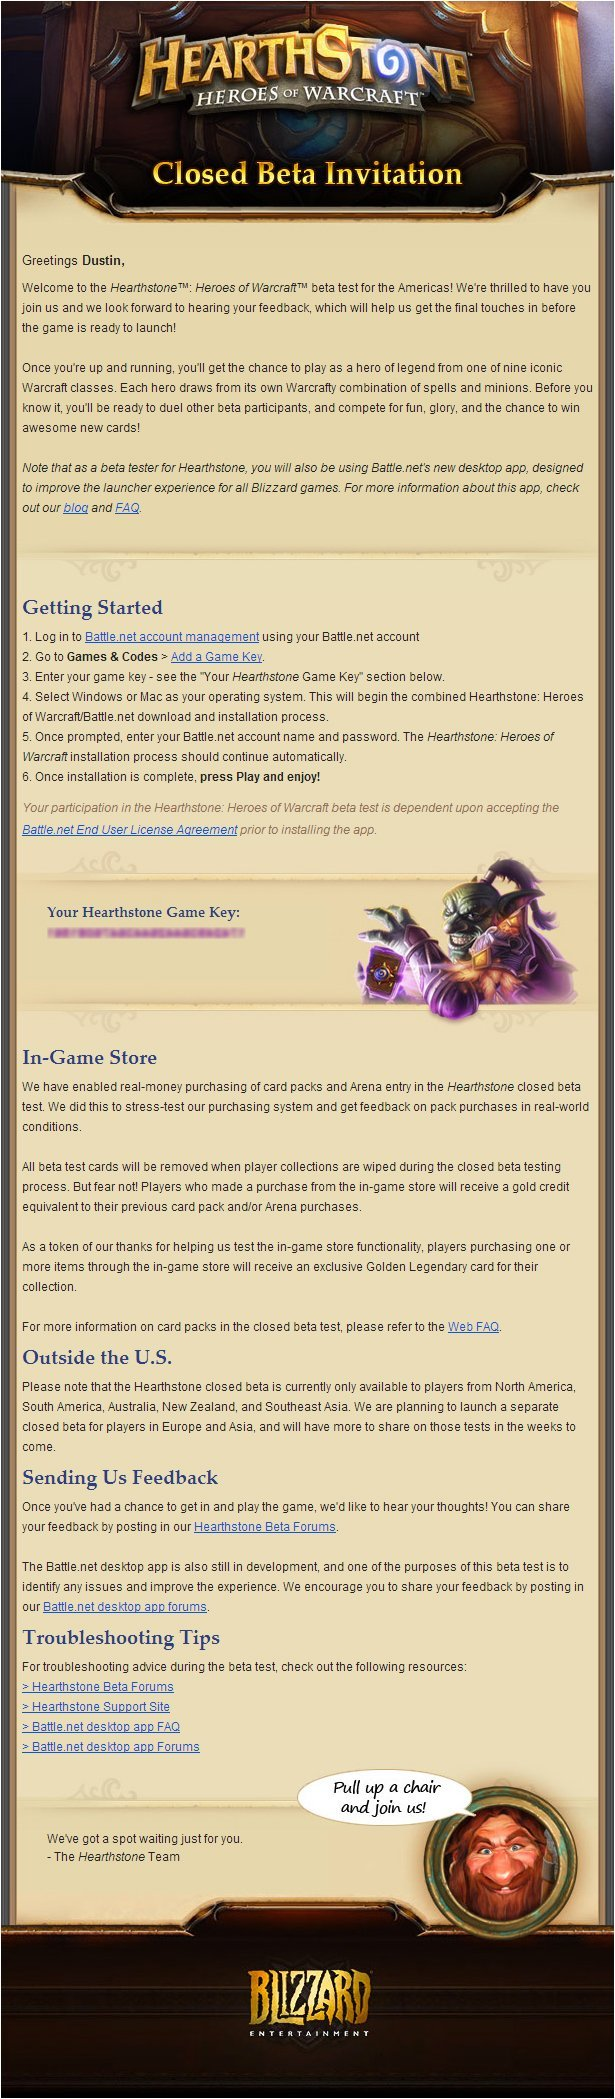 HearthStone: Heroes of WarCraft Email Beta Invitation